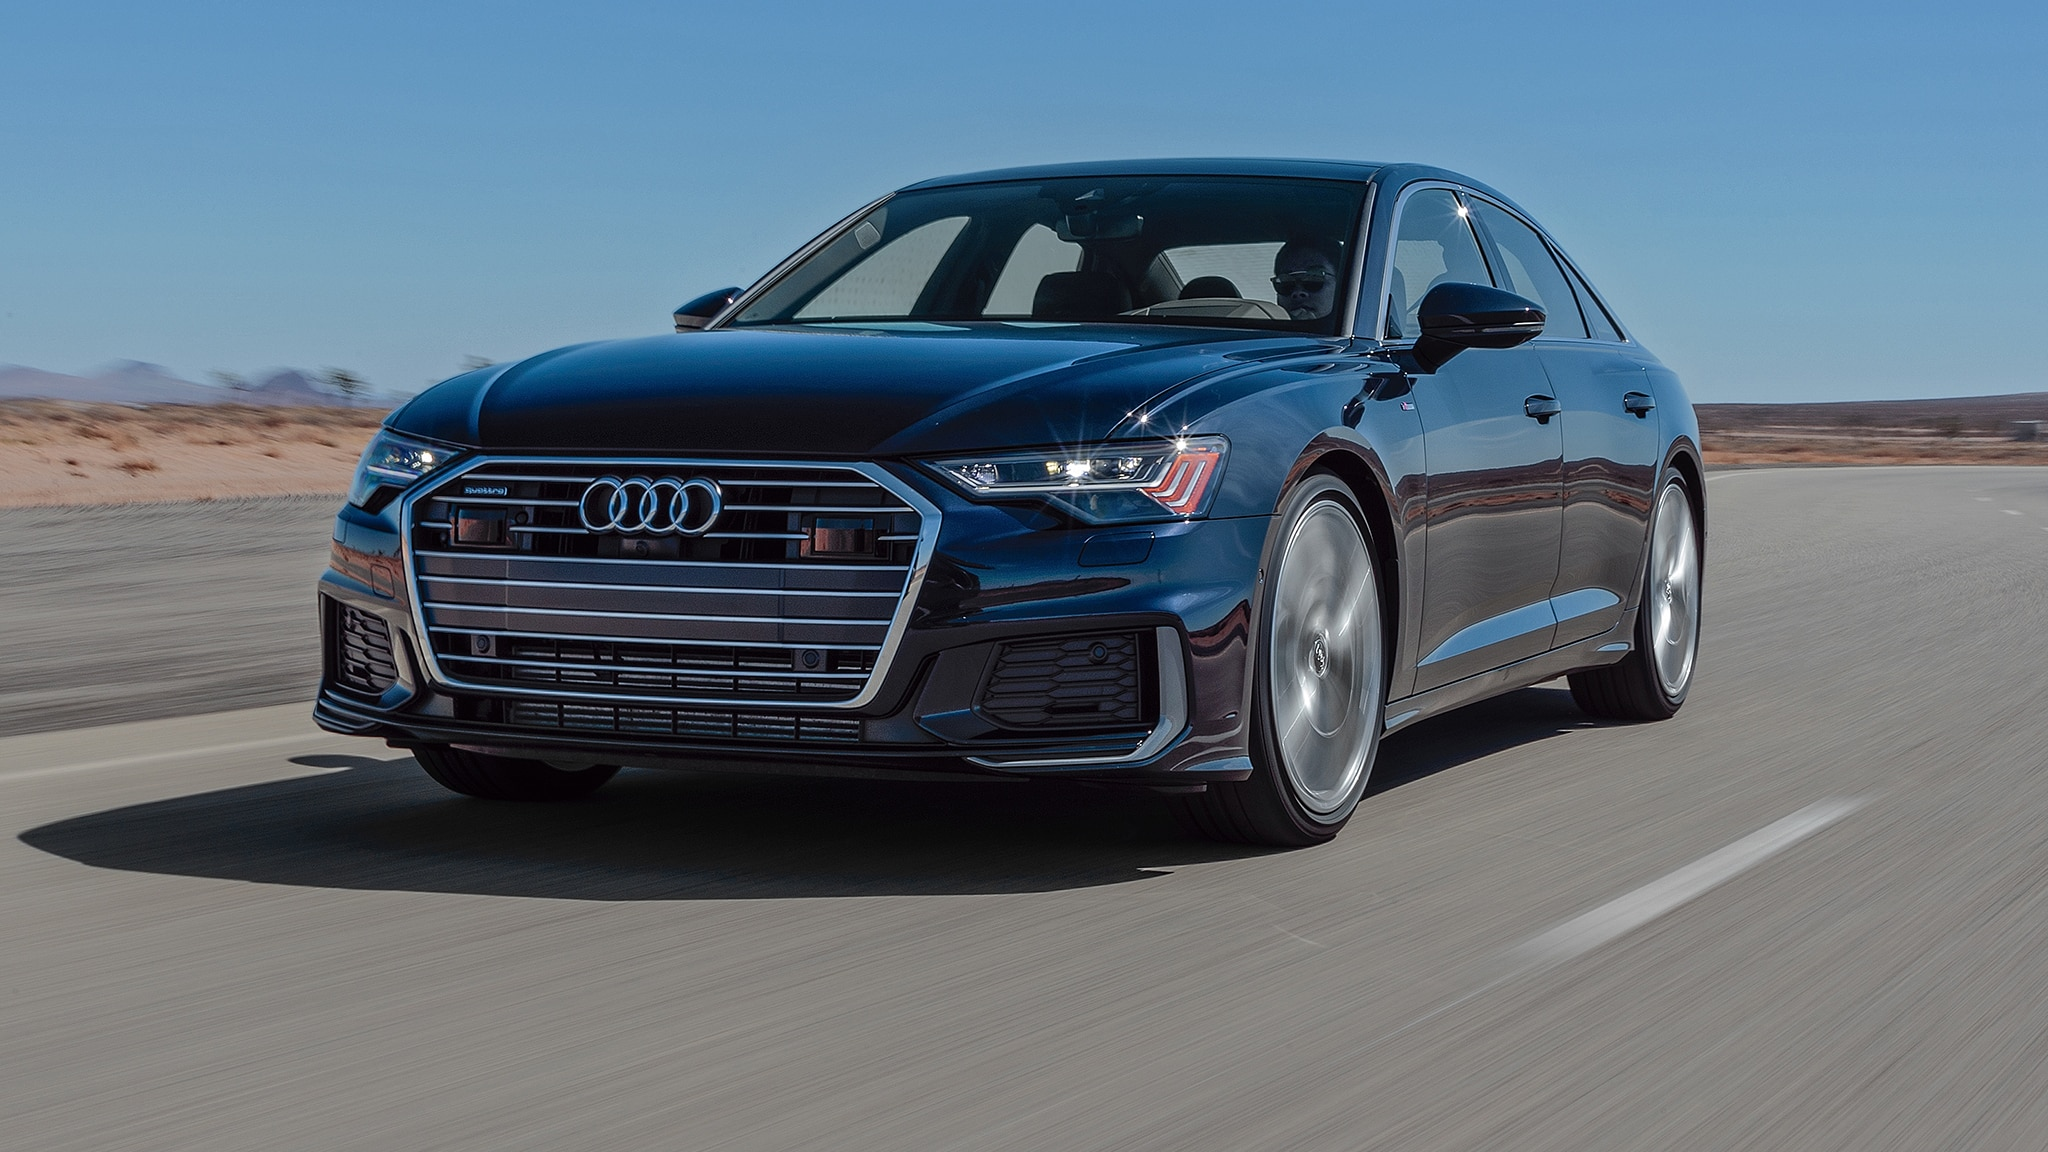 2019 Audi A6 3 0T Quattro Front Three Quarter In Motion 2